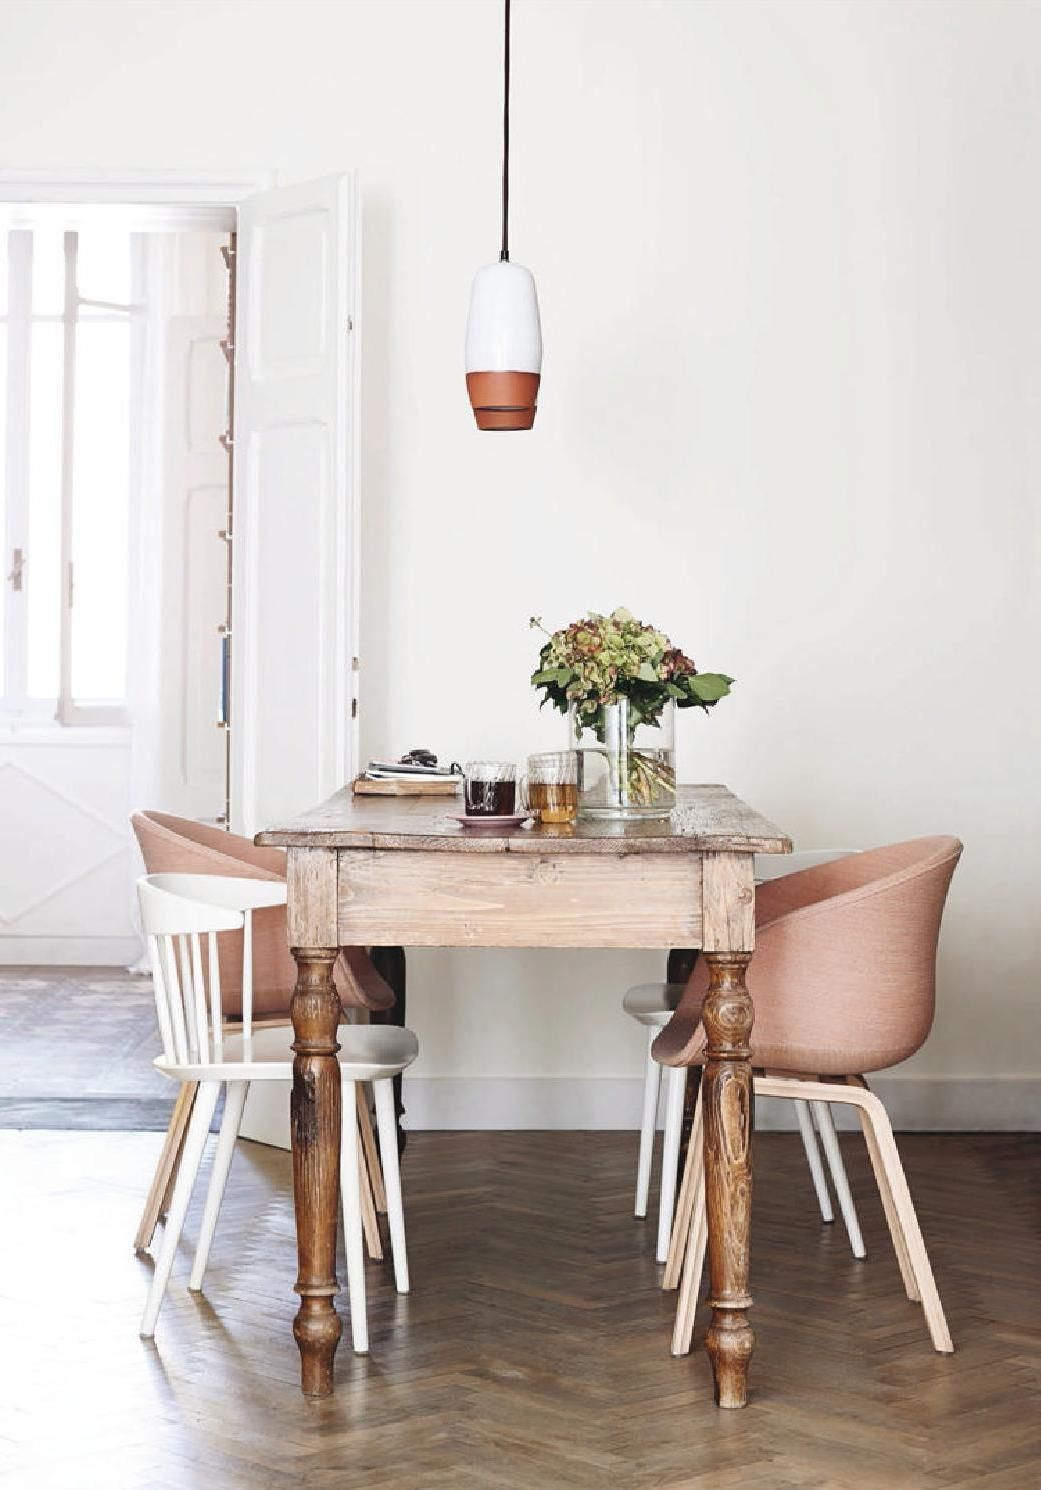 Home Decor Trends to Expect The Upcoming Season | Esszimmer, Stuhl ...